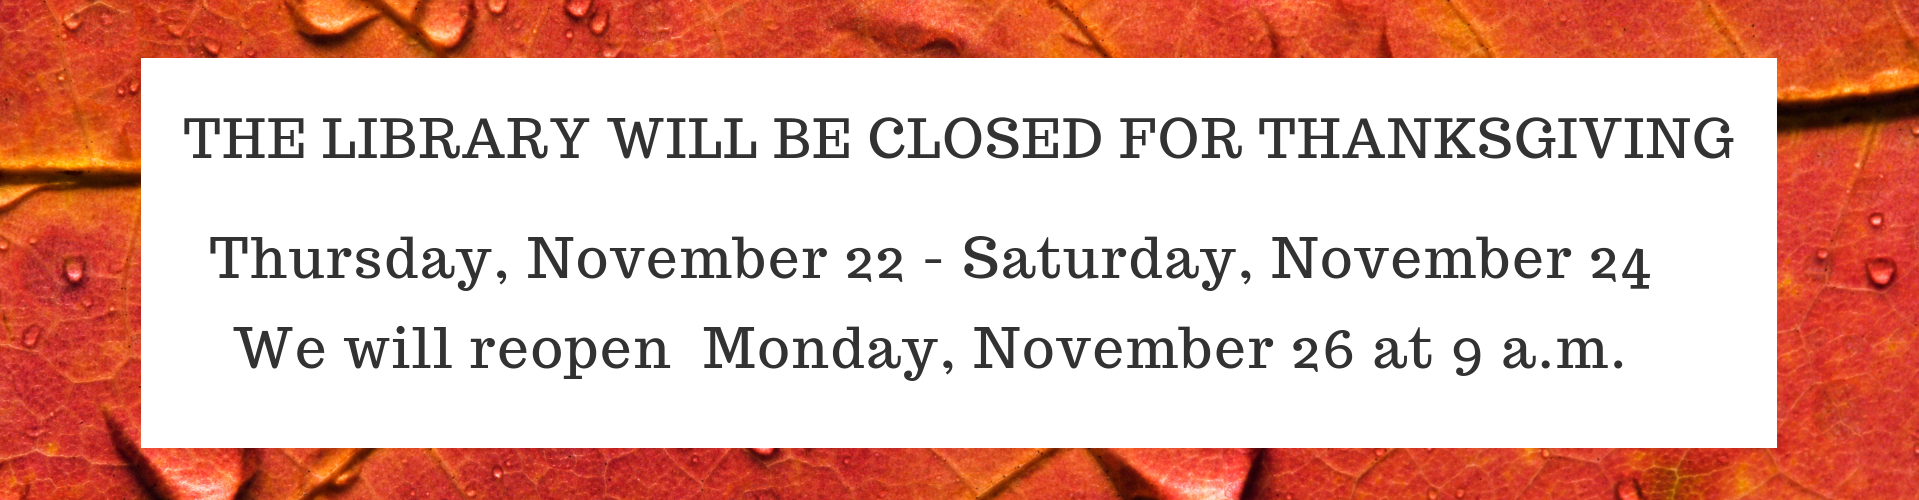 Library Closed November 22 through November 24 for Thanksgiving